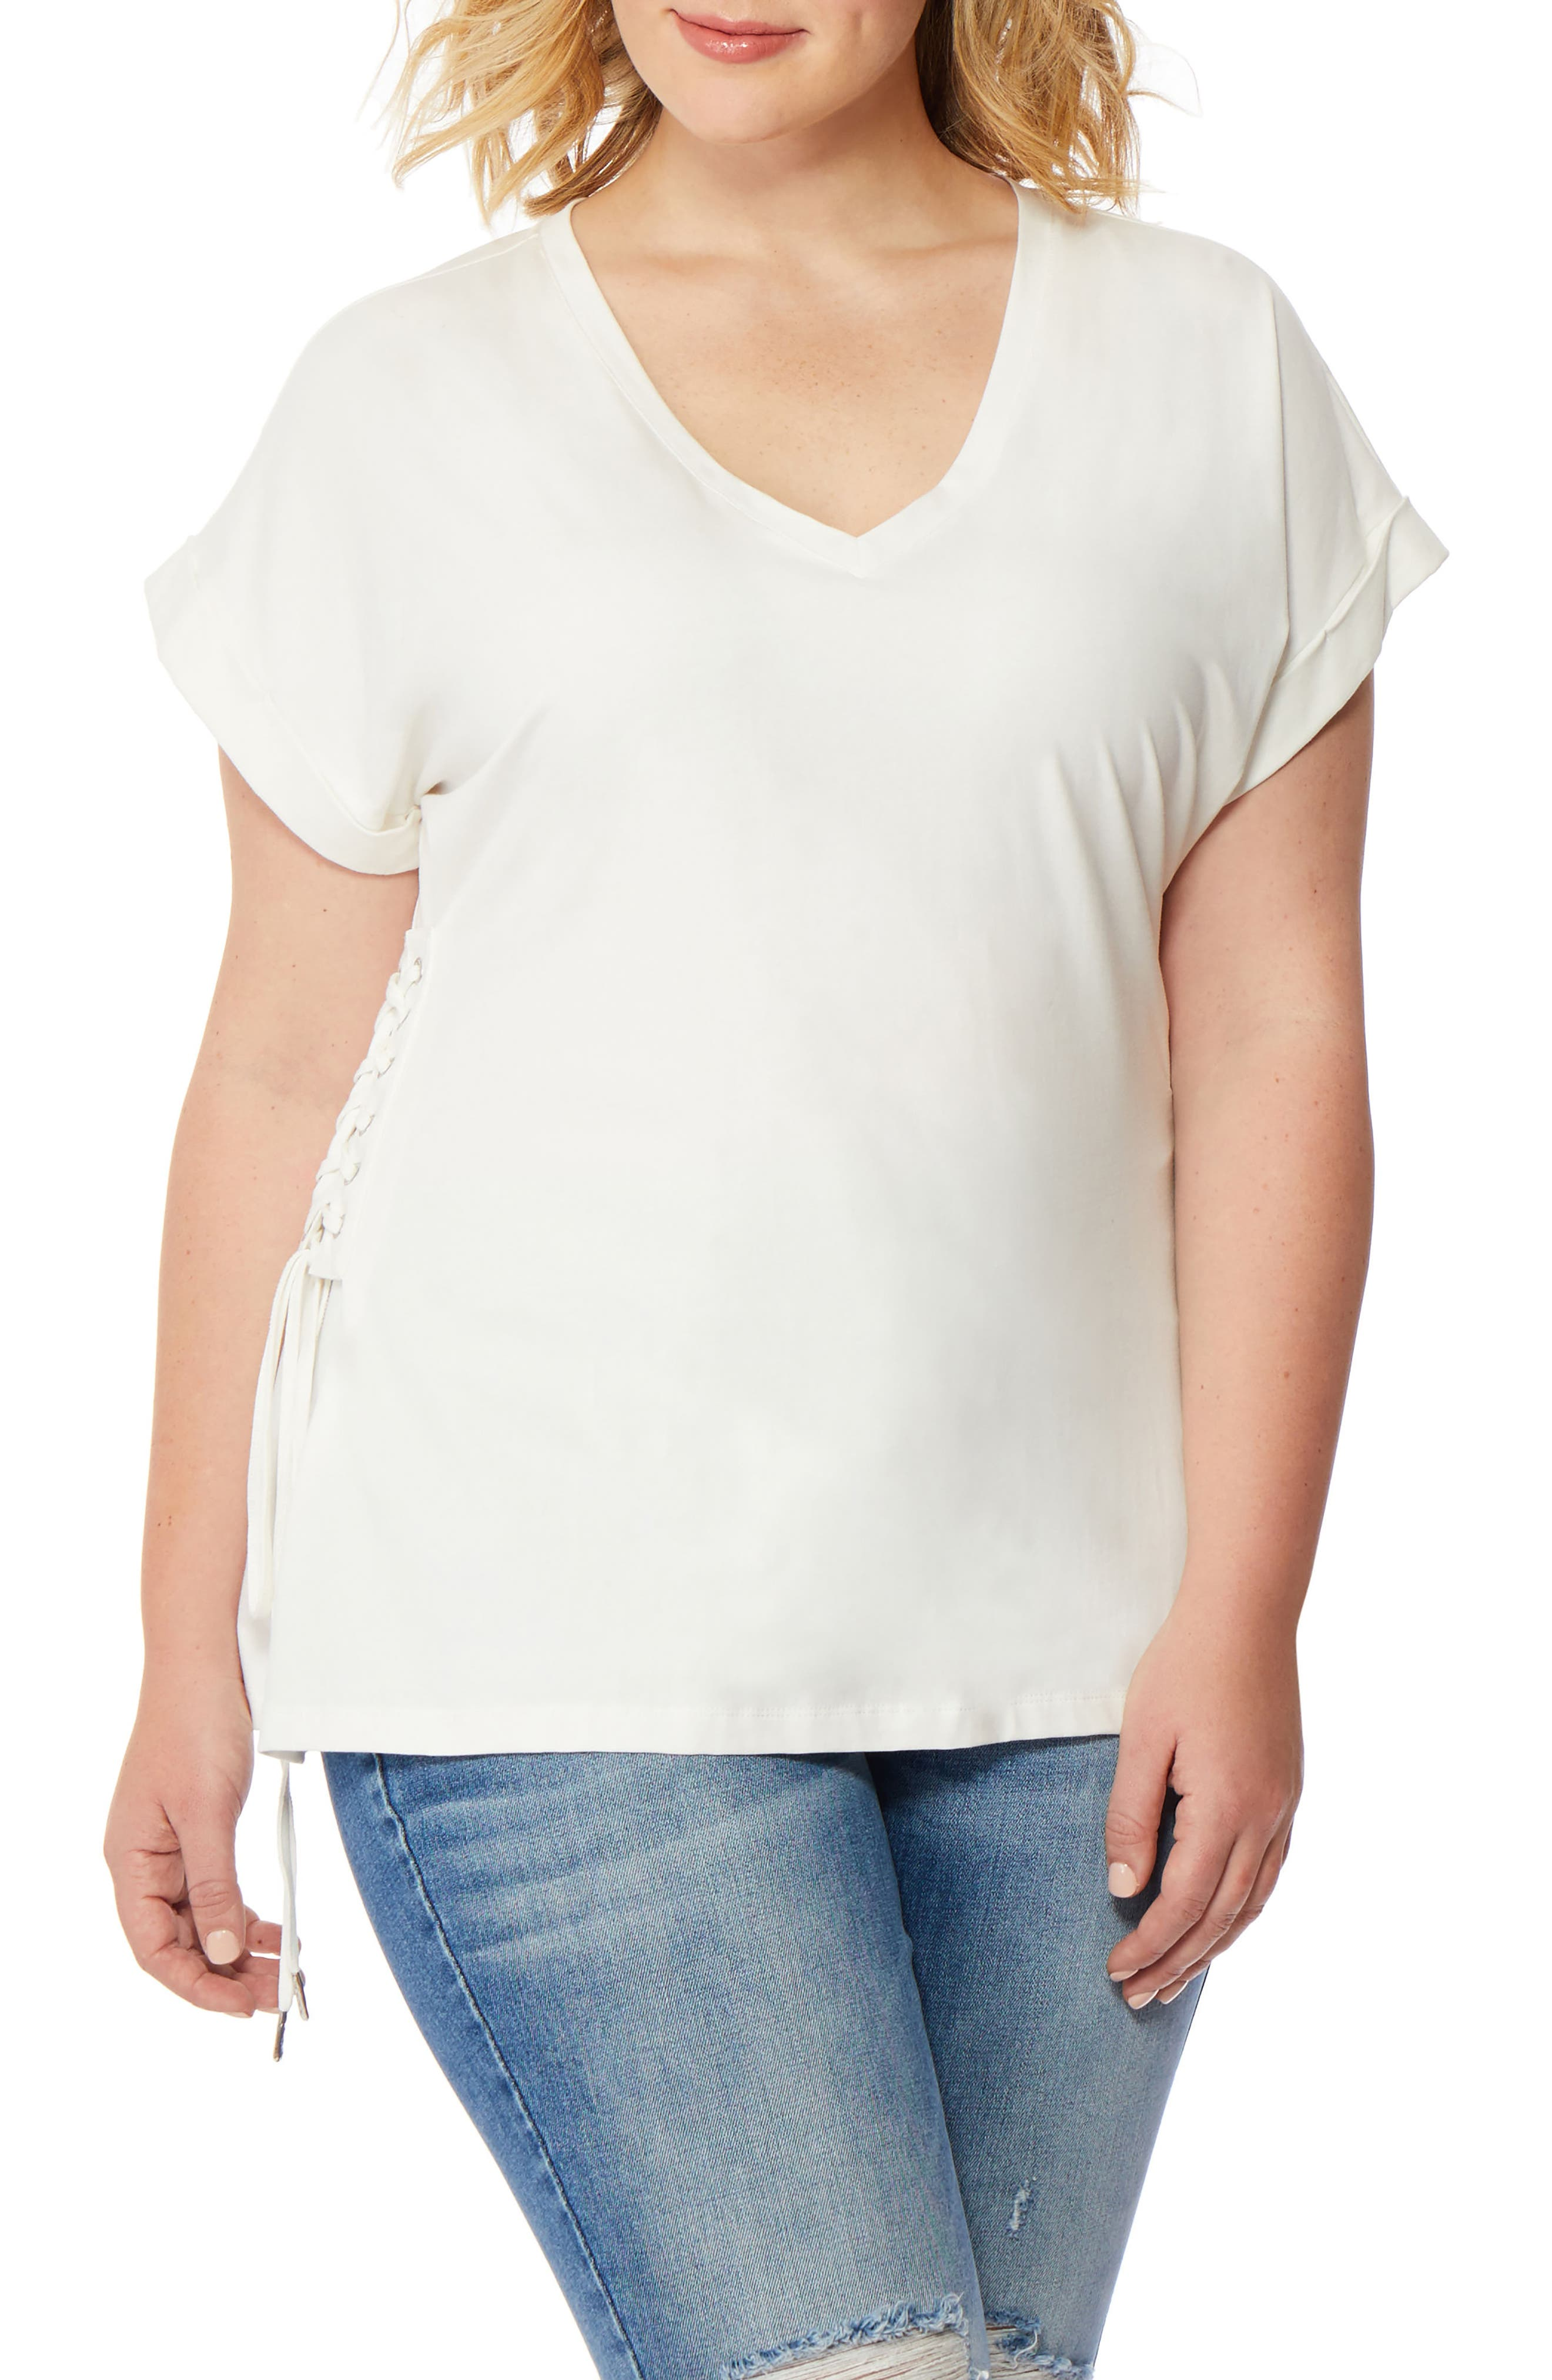 Main Image - Rebel Wilson x Angels V-Neck Lace-Up Tee (Plus Size)